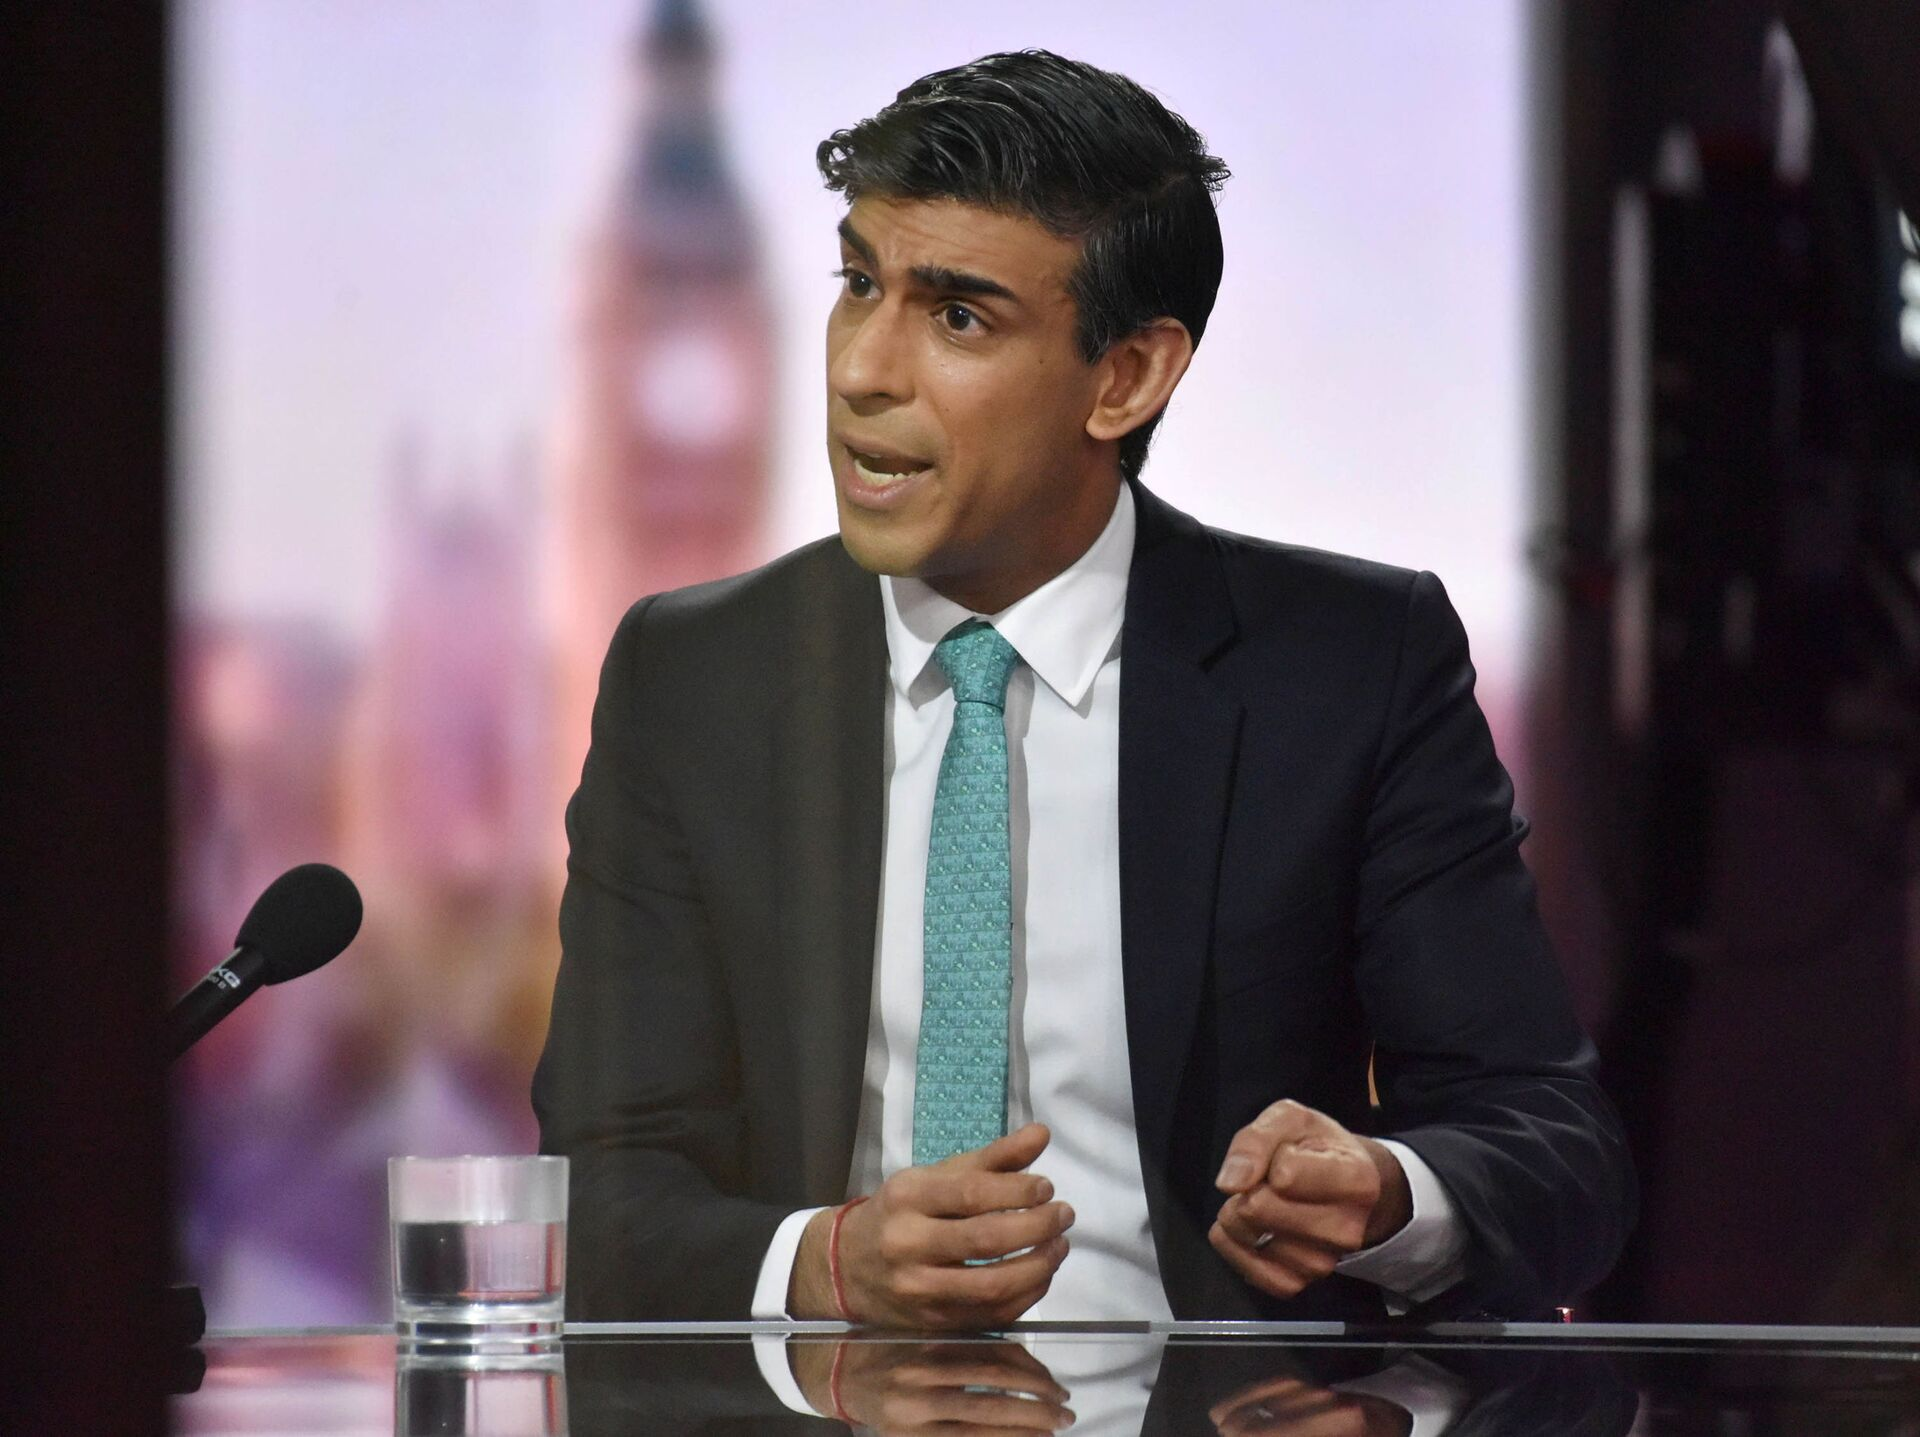 Britain's Chancellor of the Exchequer Rishi Sunak speaks on BBC TV's The Andrew Marr Show - Sputnik International, 1920, 07.09.2021